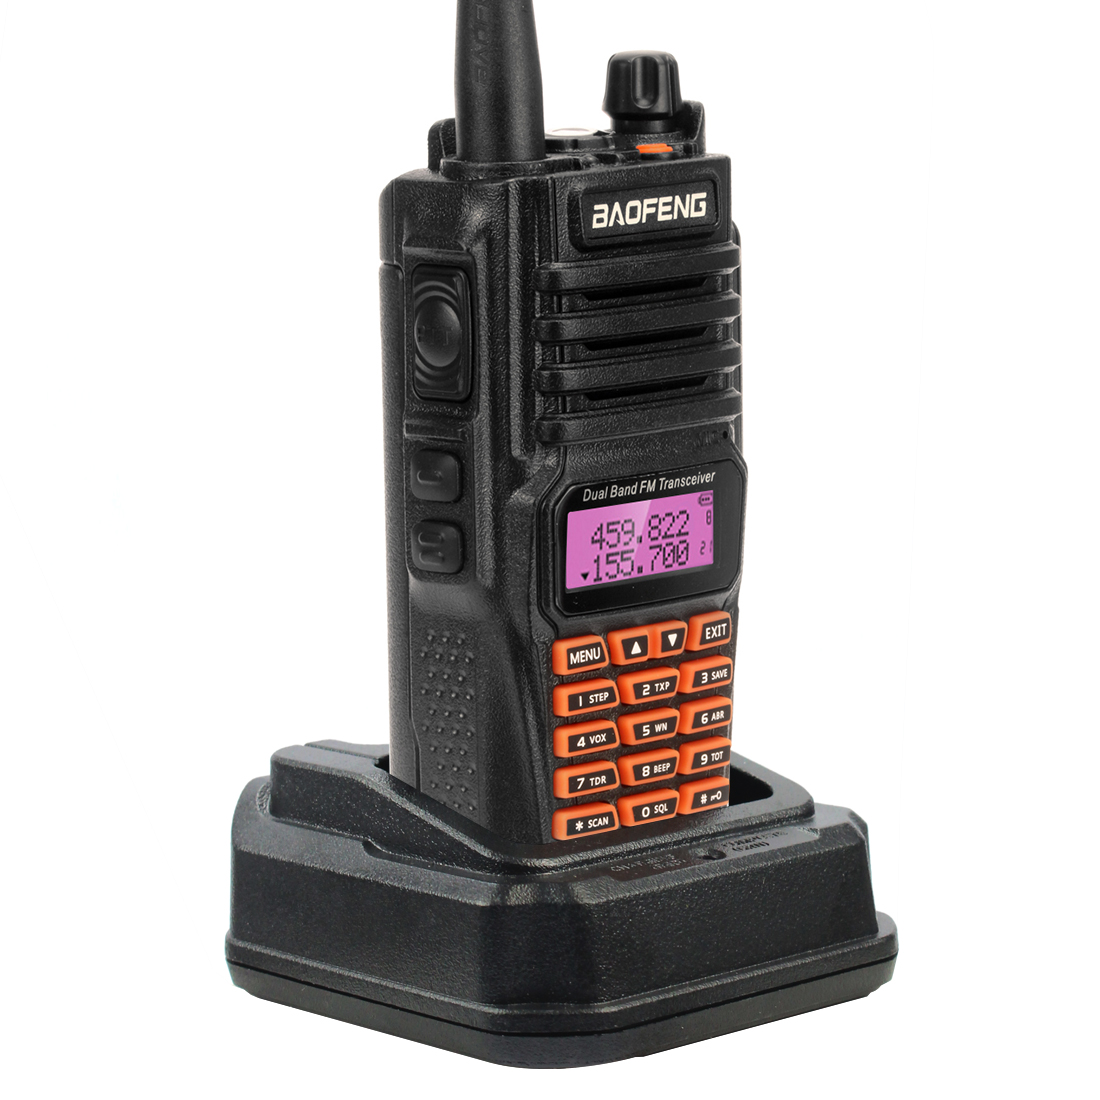 Baofeng UV-9R Waterproof Walkie Talkie IP67 5W Two Way Radio Station UHF VHF Outdoor Dual Band Walkie-talkie image